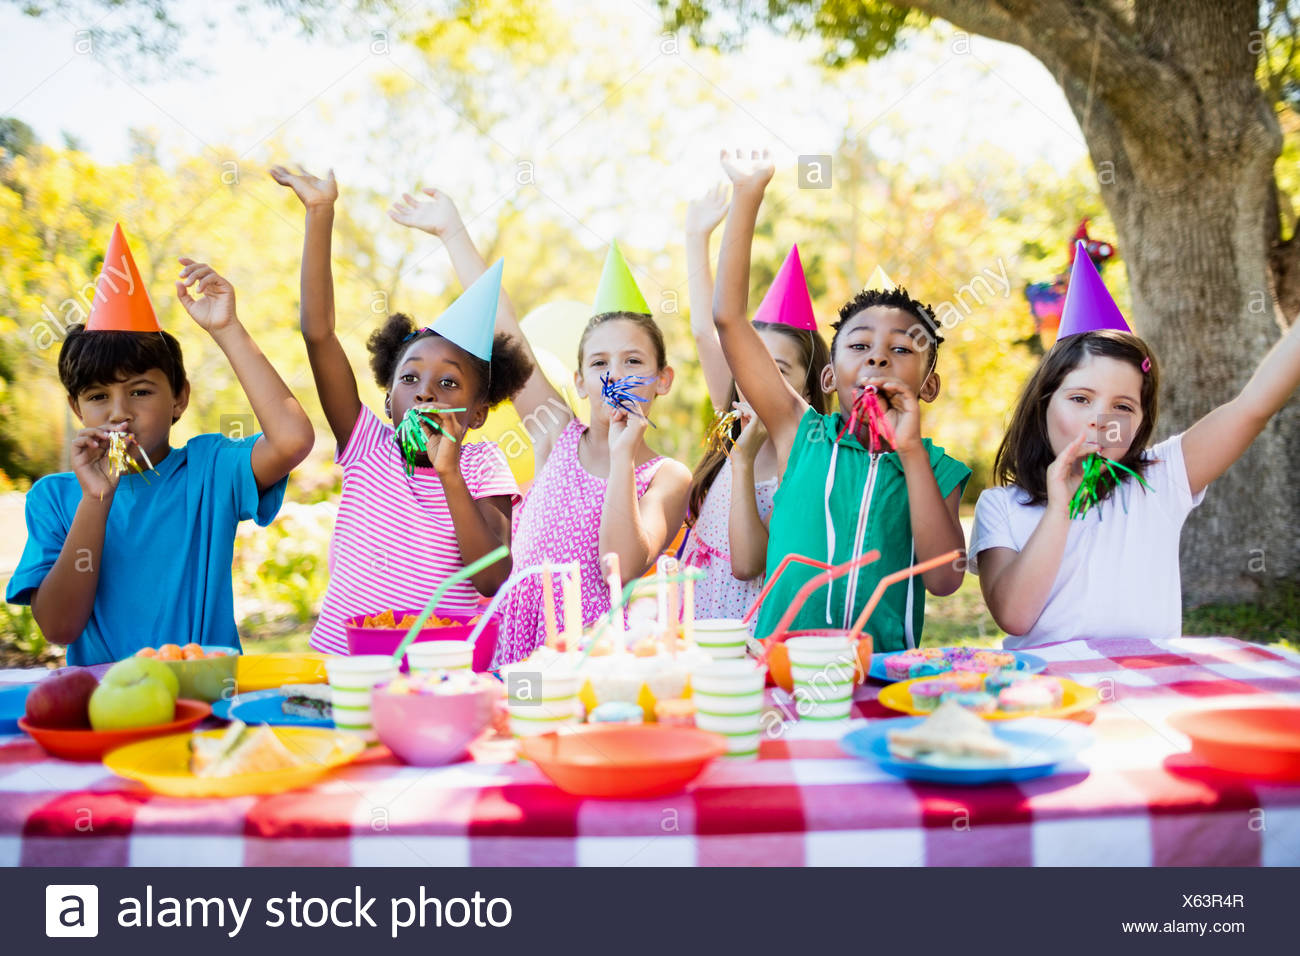 Cute children having fun during a birthday party - Stock Image